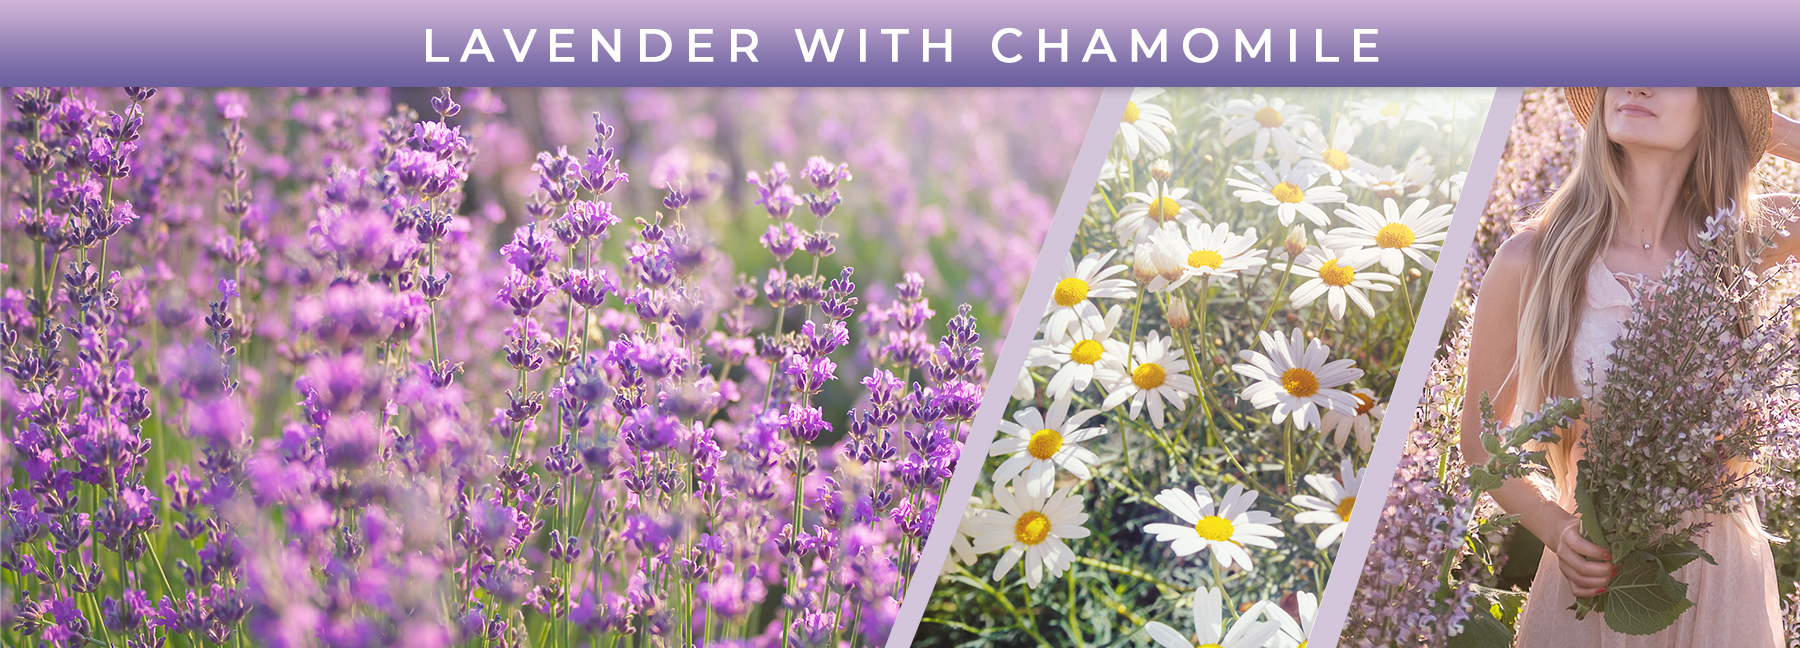 Lavender with Chamomile fragrance elements